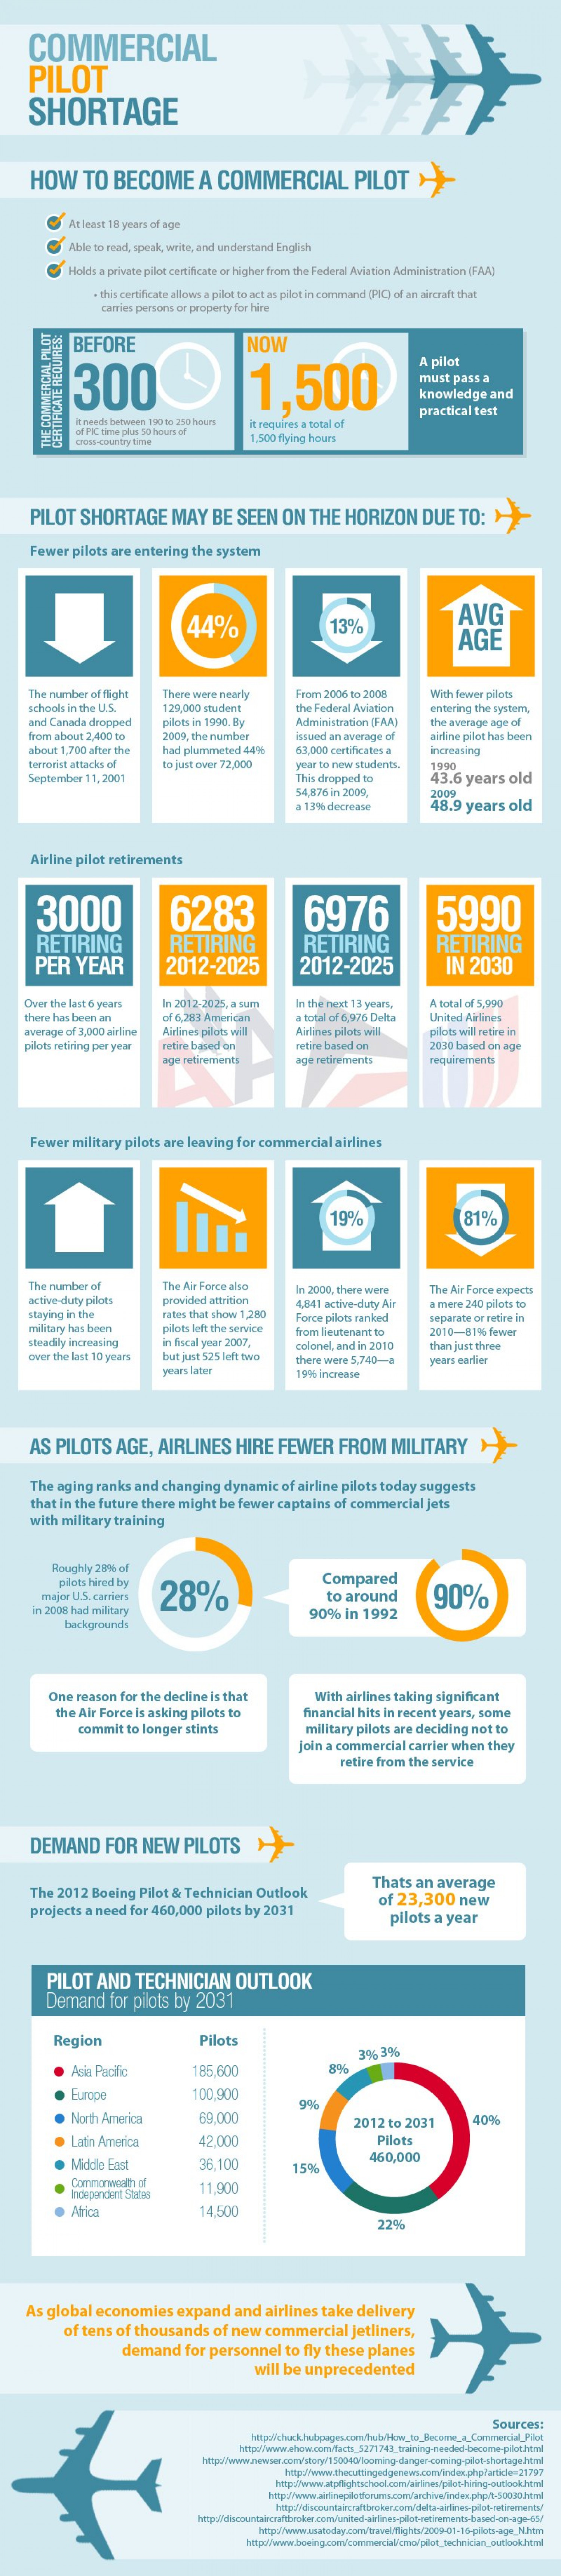 The Commercial Pilot Shortage Infographic